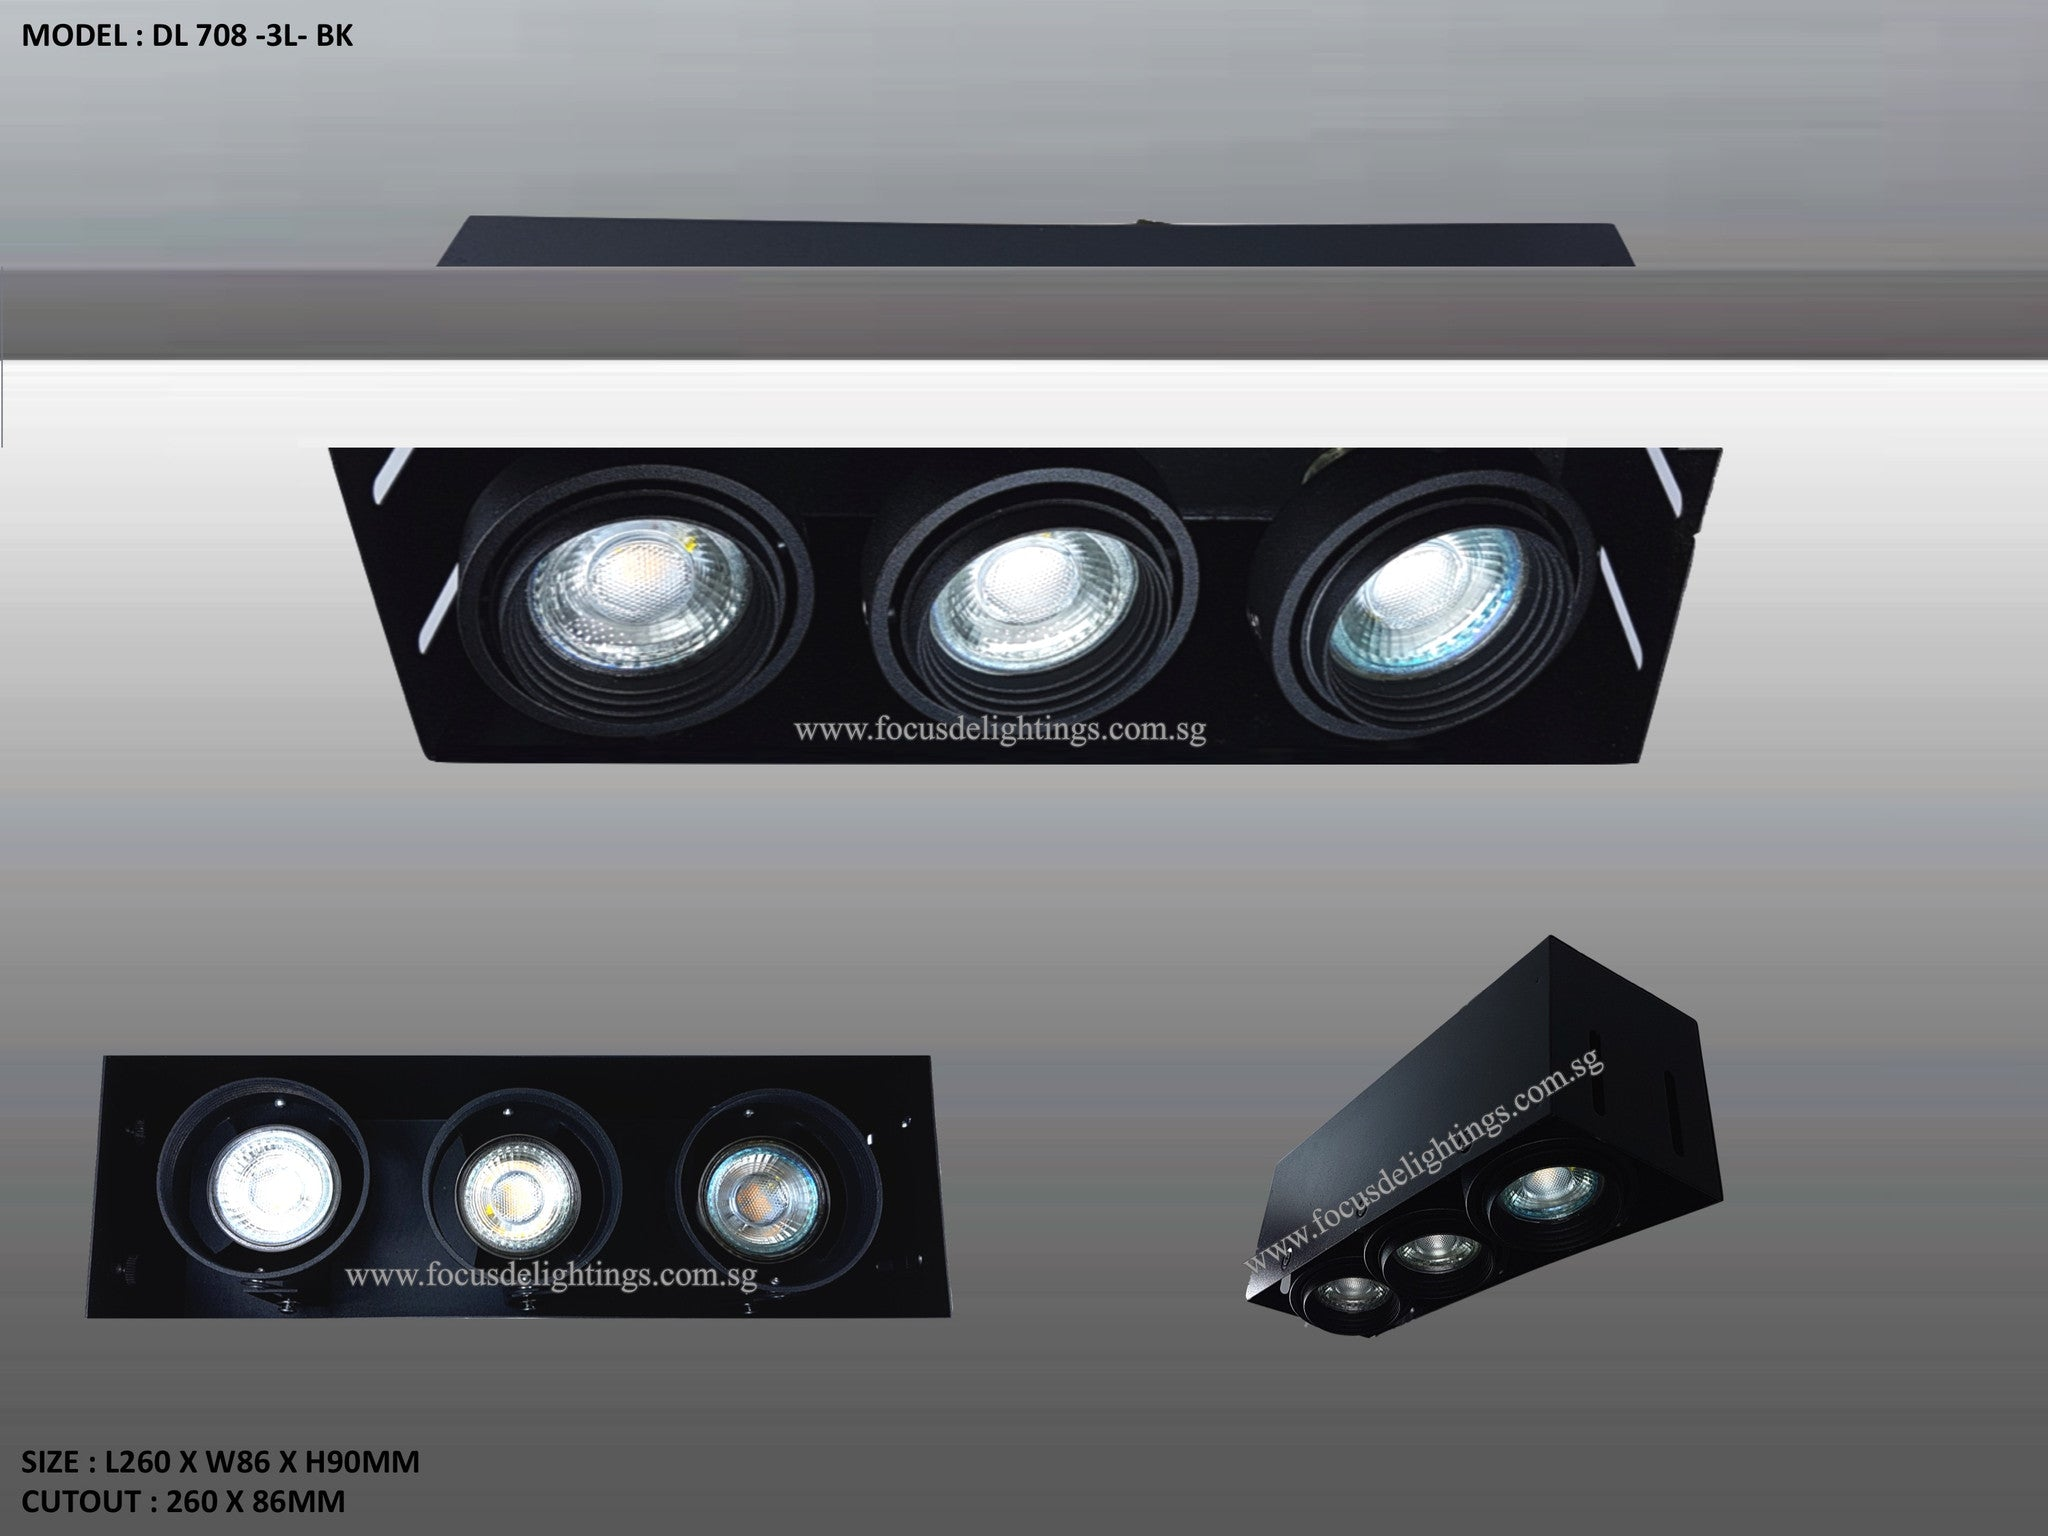 Dl 708 Trimless Series Adjustable Recessed Lighting